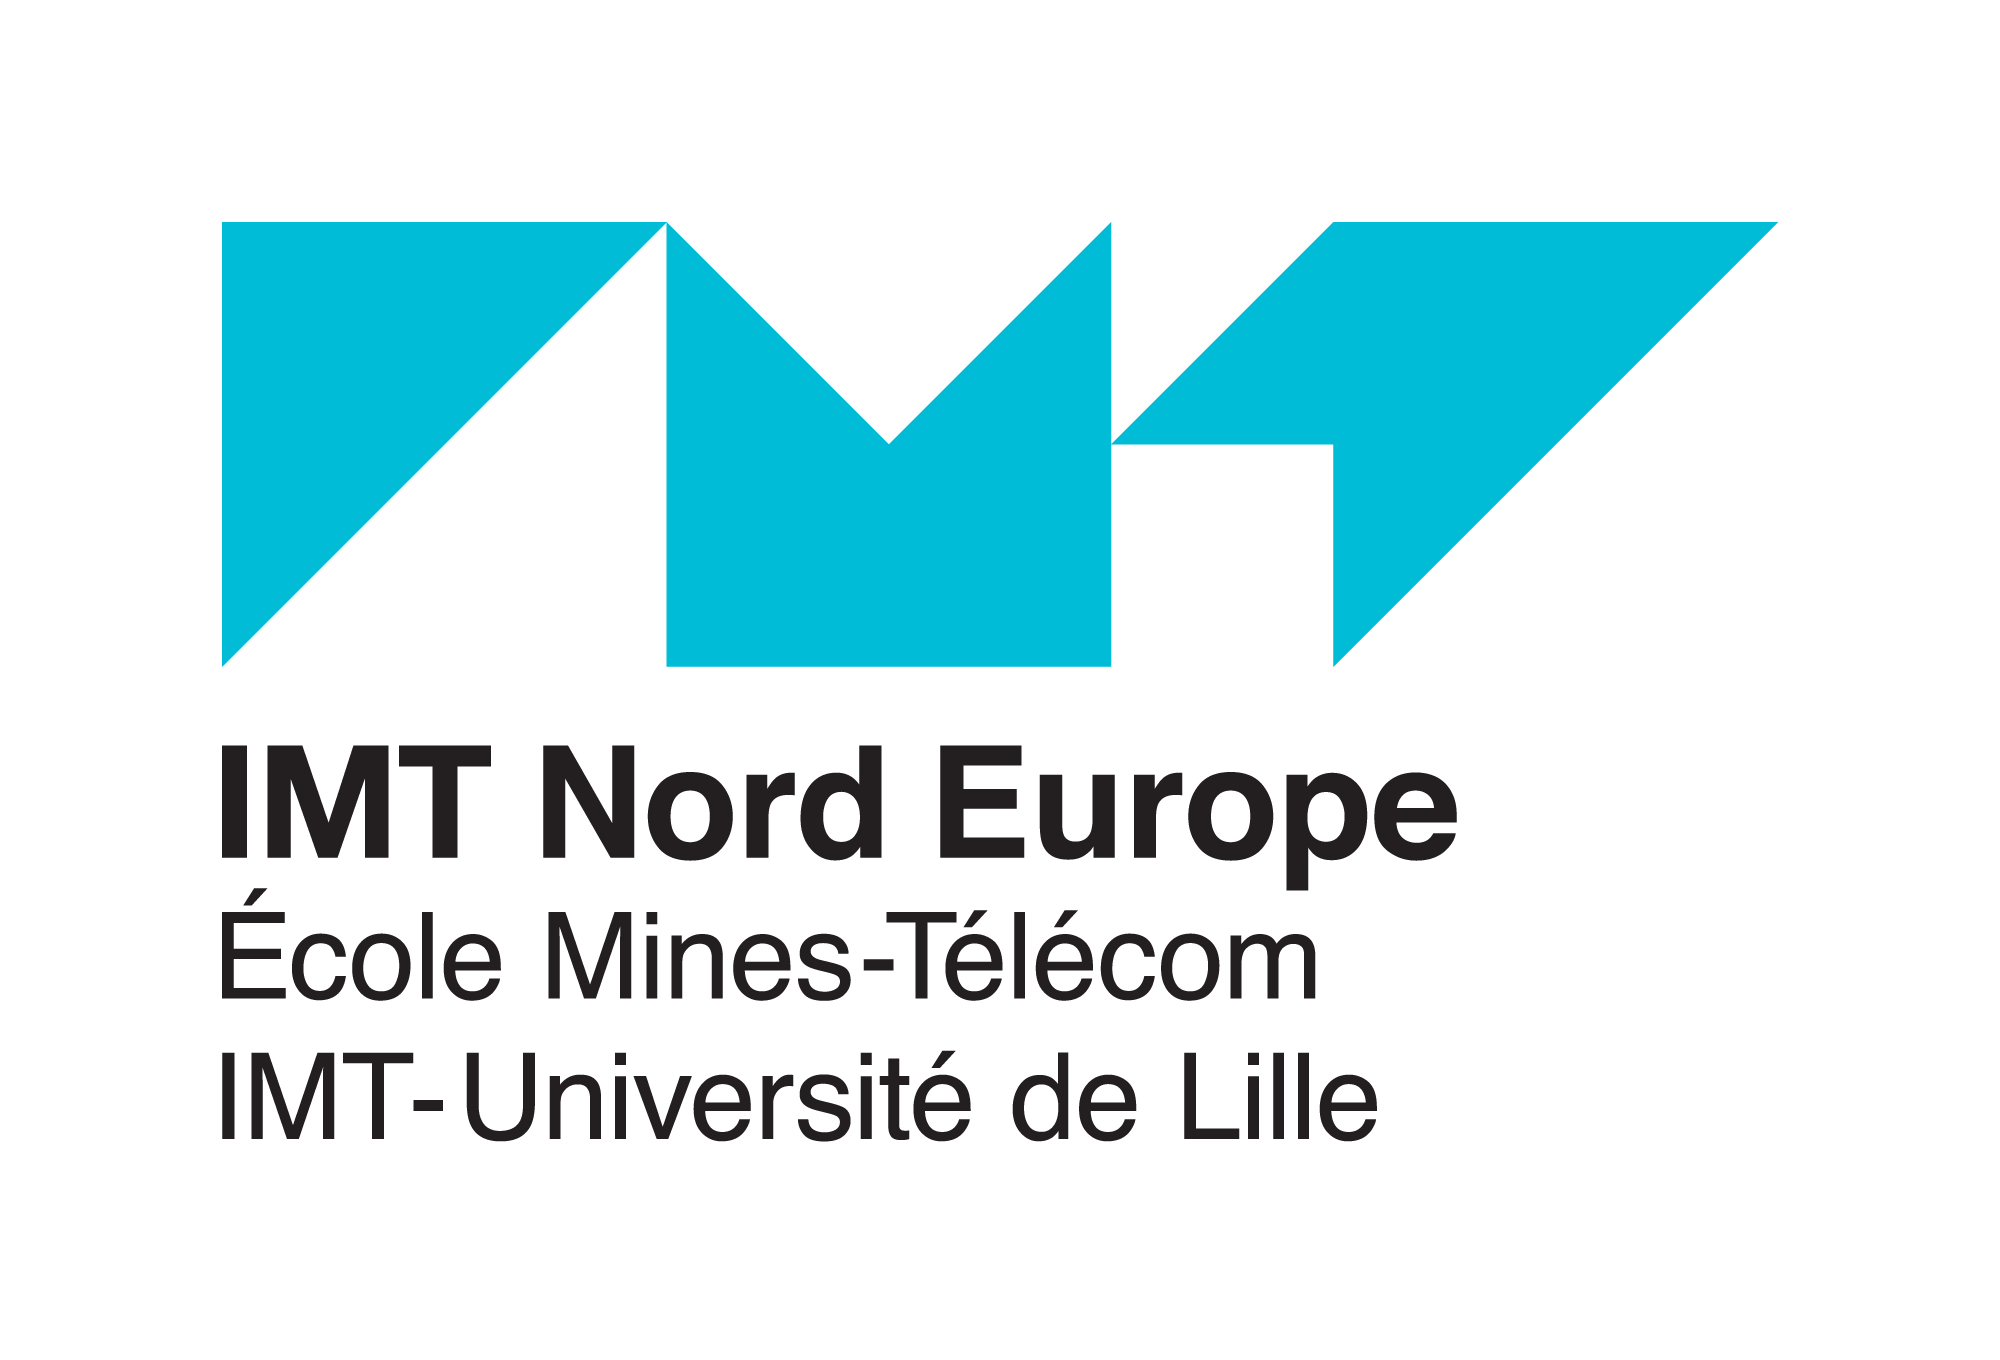 IMT Nord Europe